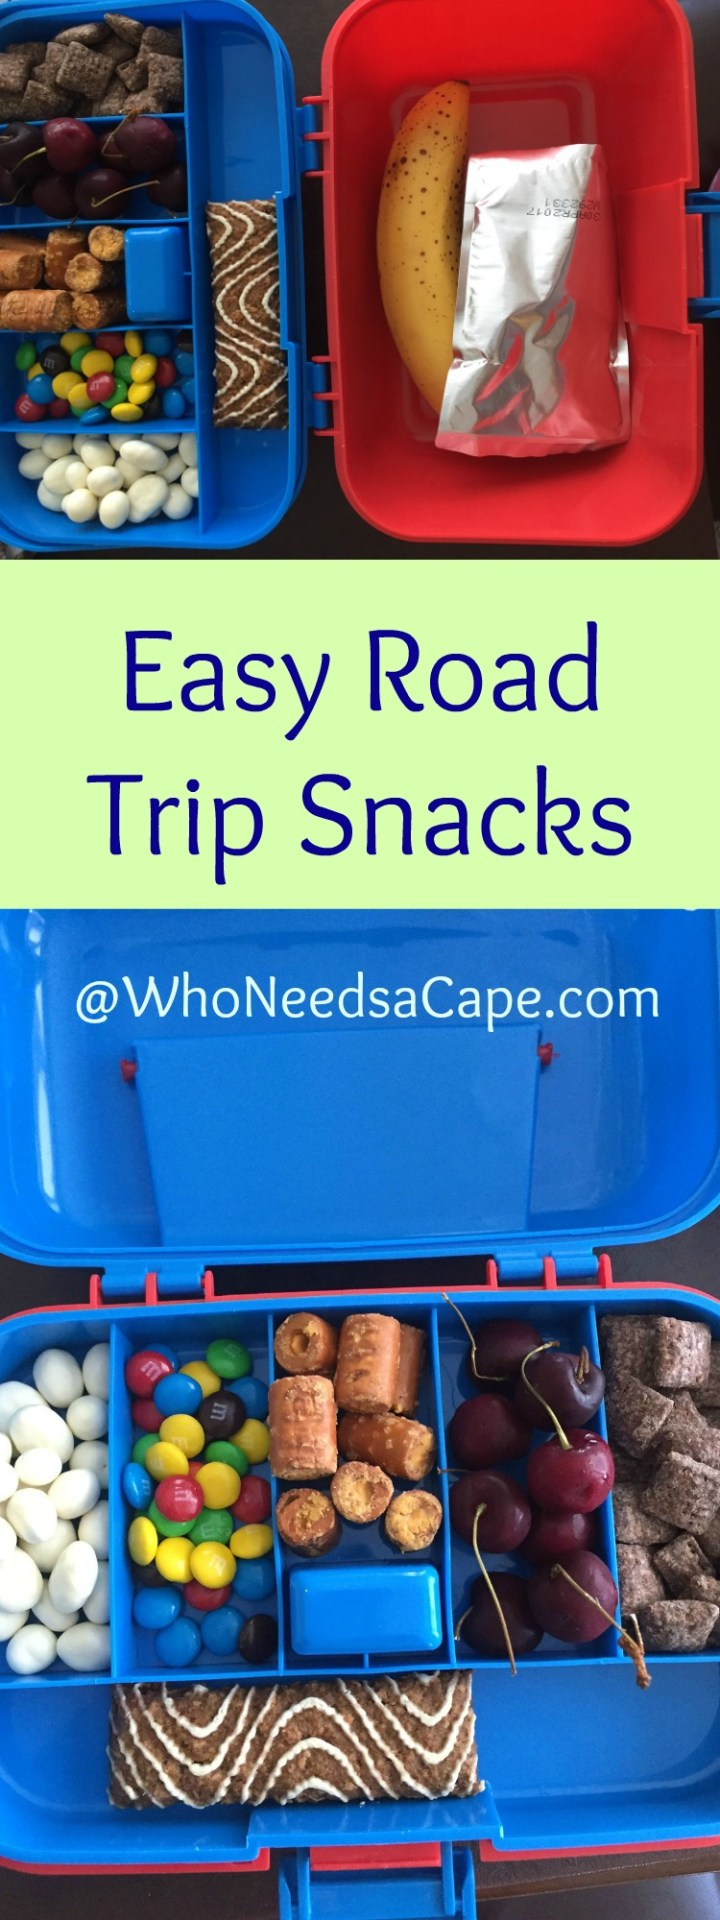 Easy Road Trip Snacks - This post shows you a really simple way to pack fun snacks for your kids! Who Needs a Cape